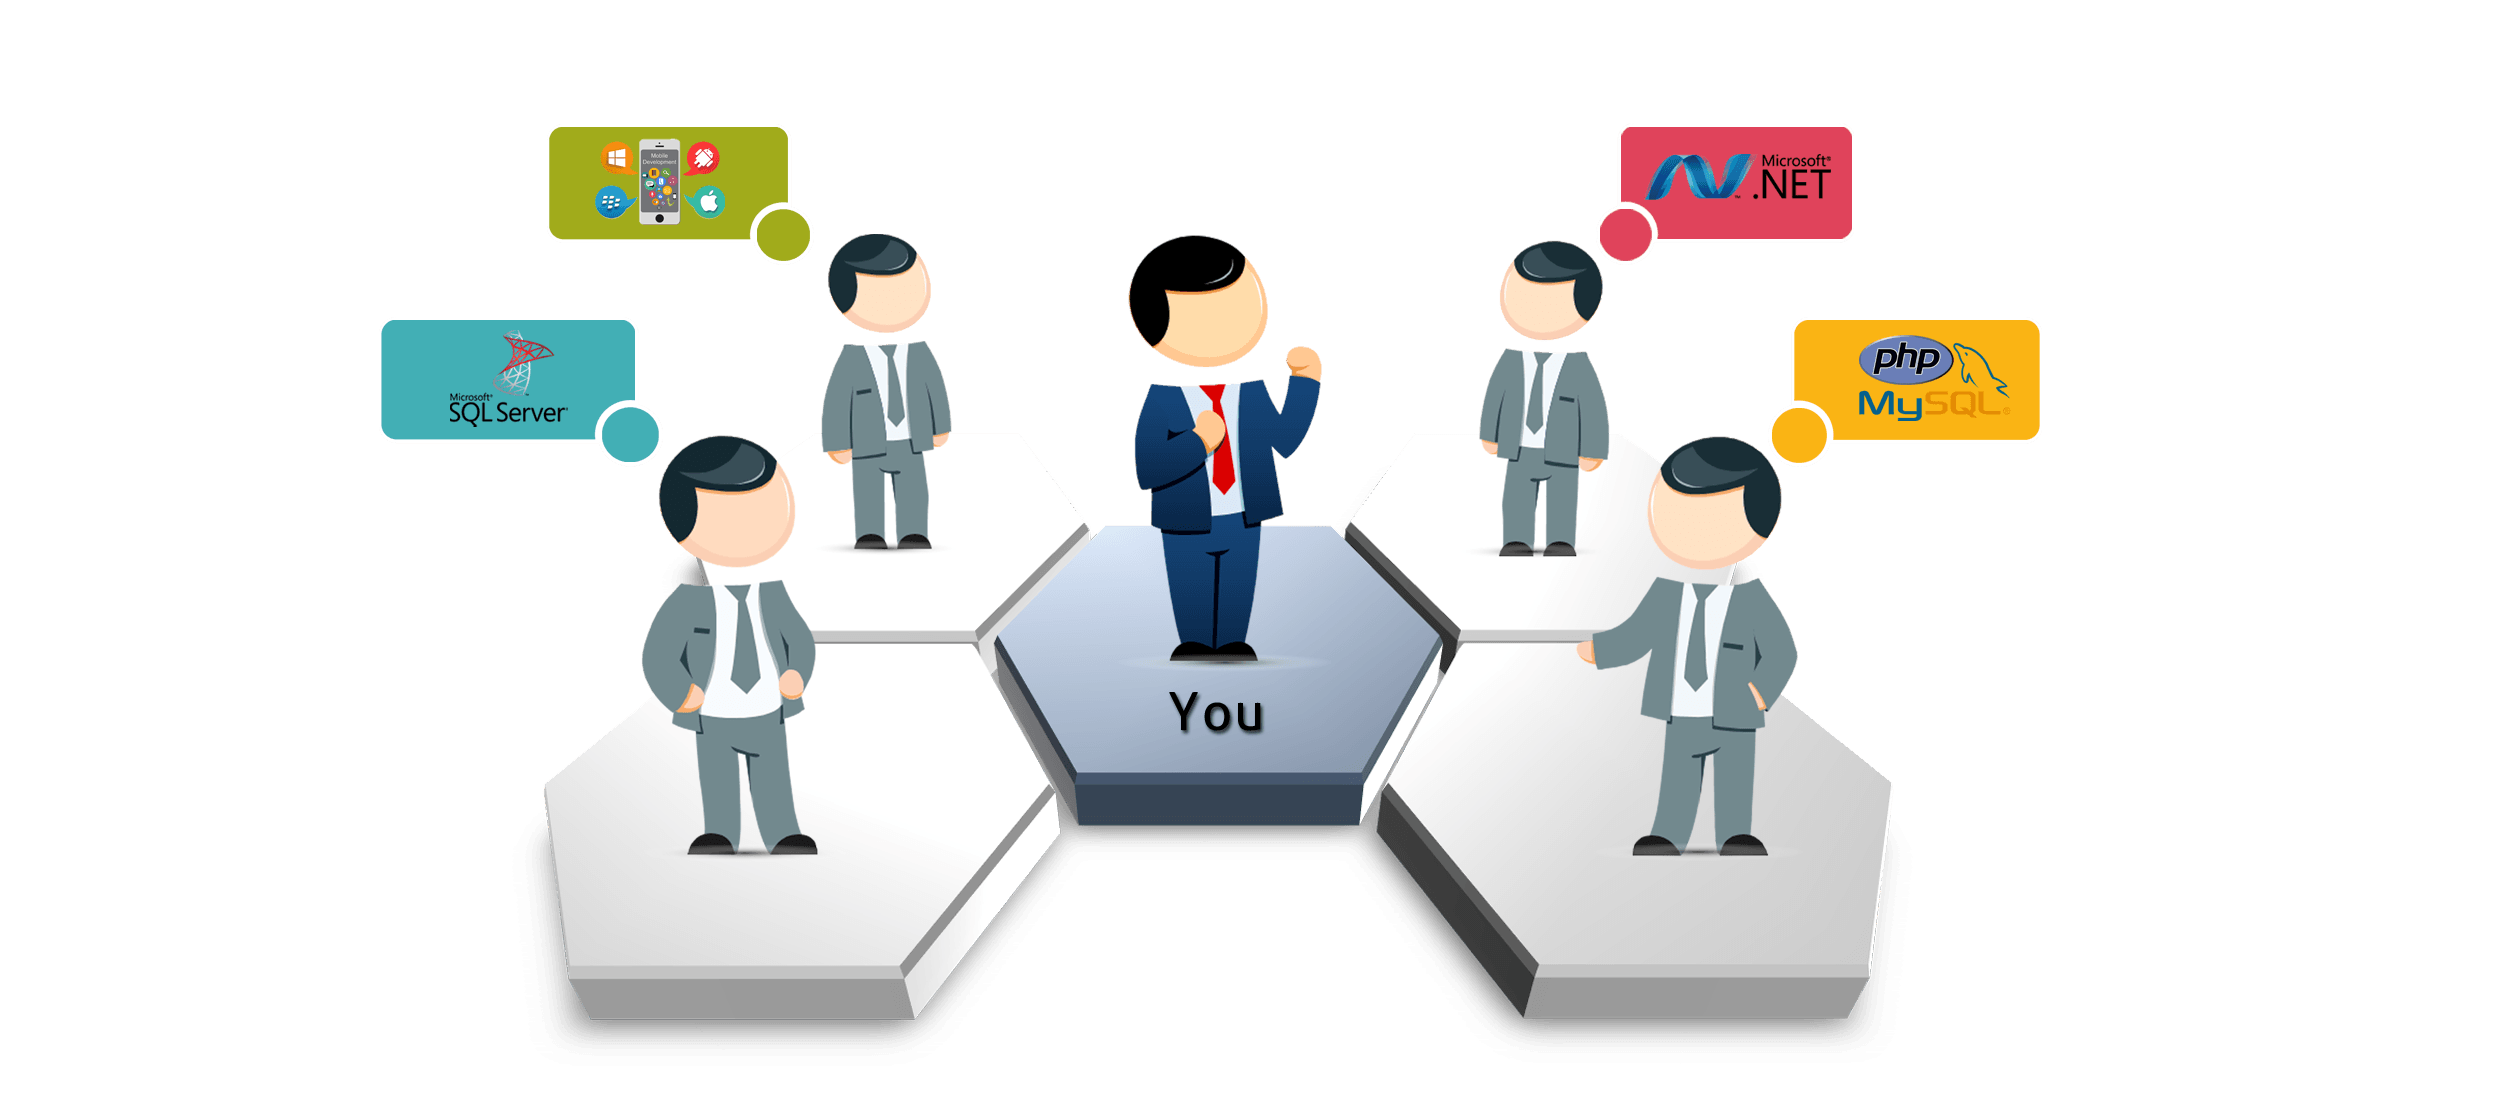 hire employee perfect software resources help hiring game dedicated development marketing developers experts resource professionals digital skills developer could